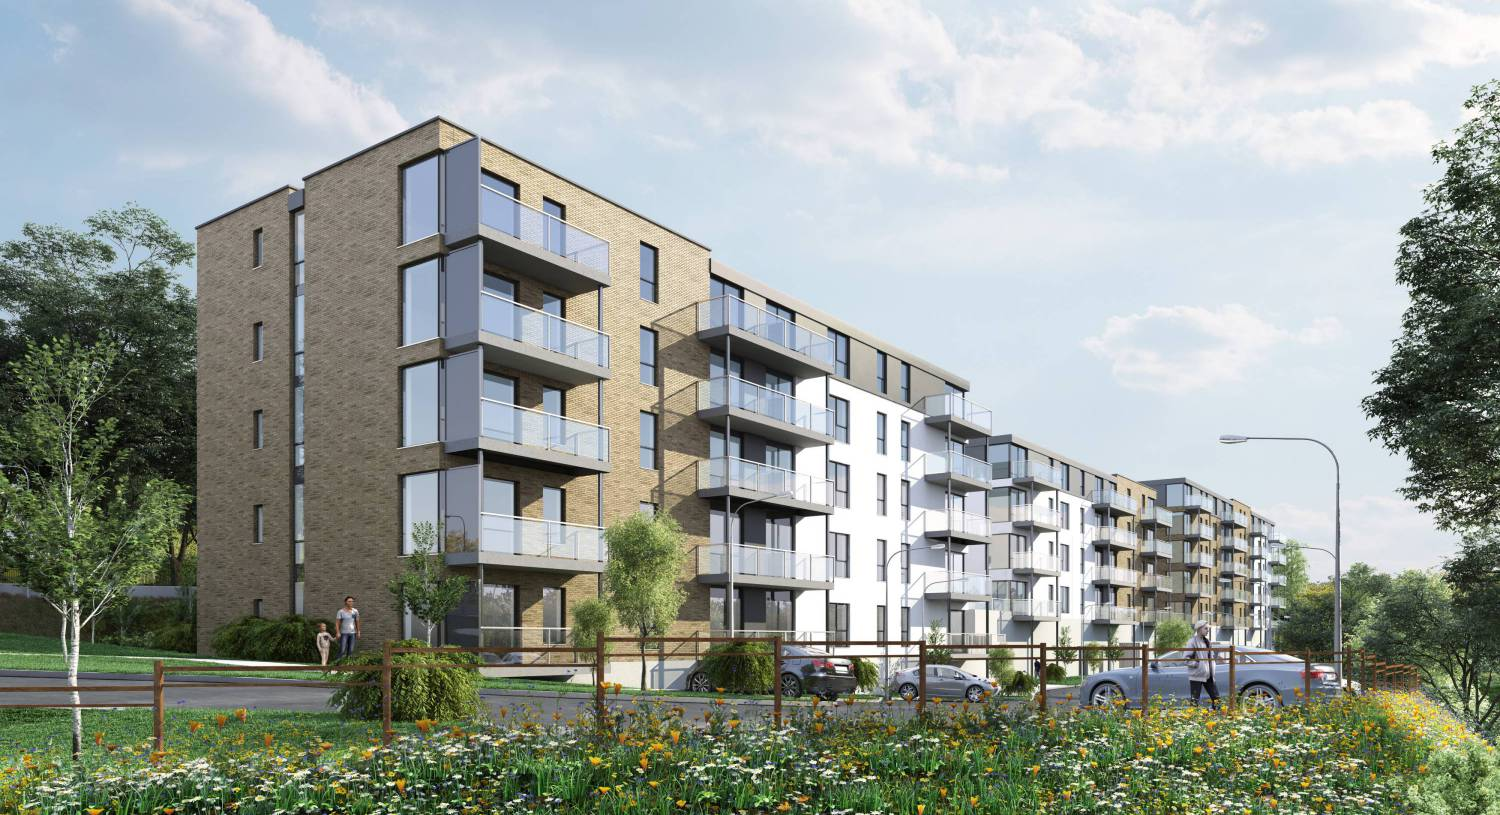 Designing future homes for private rented sector